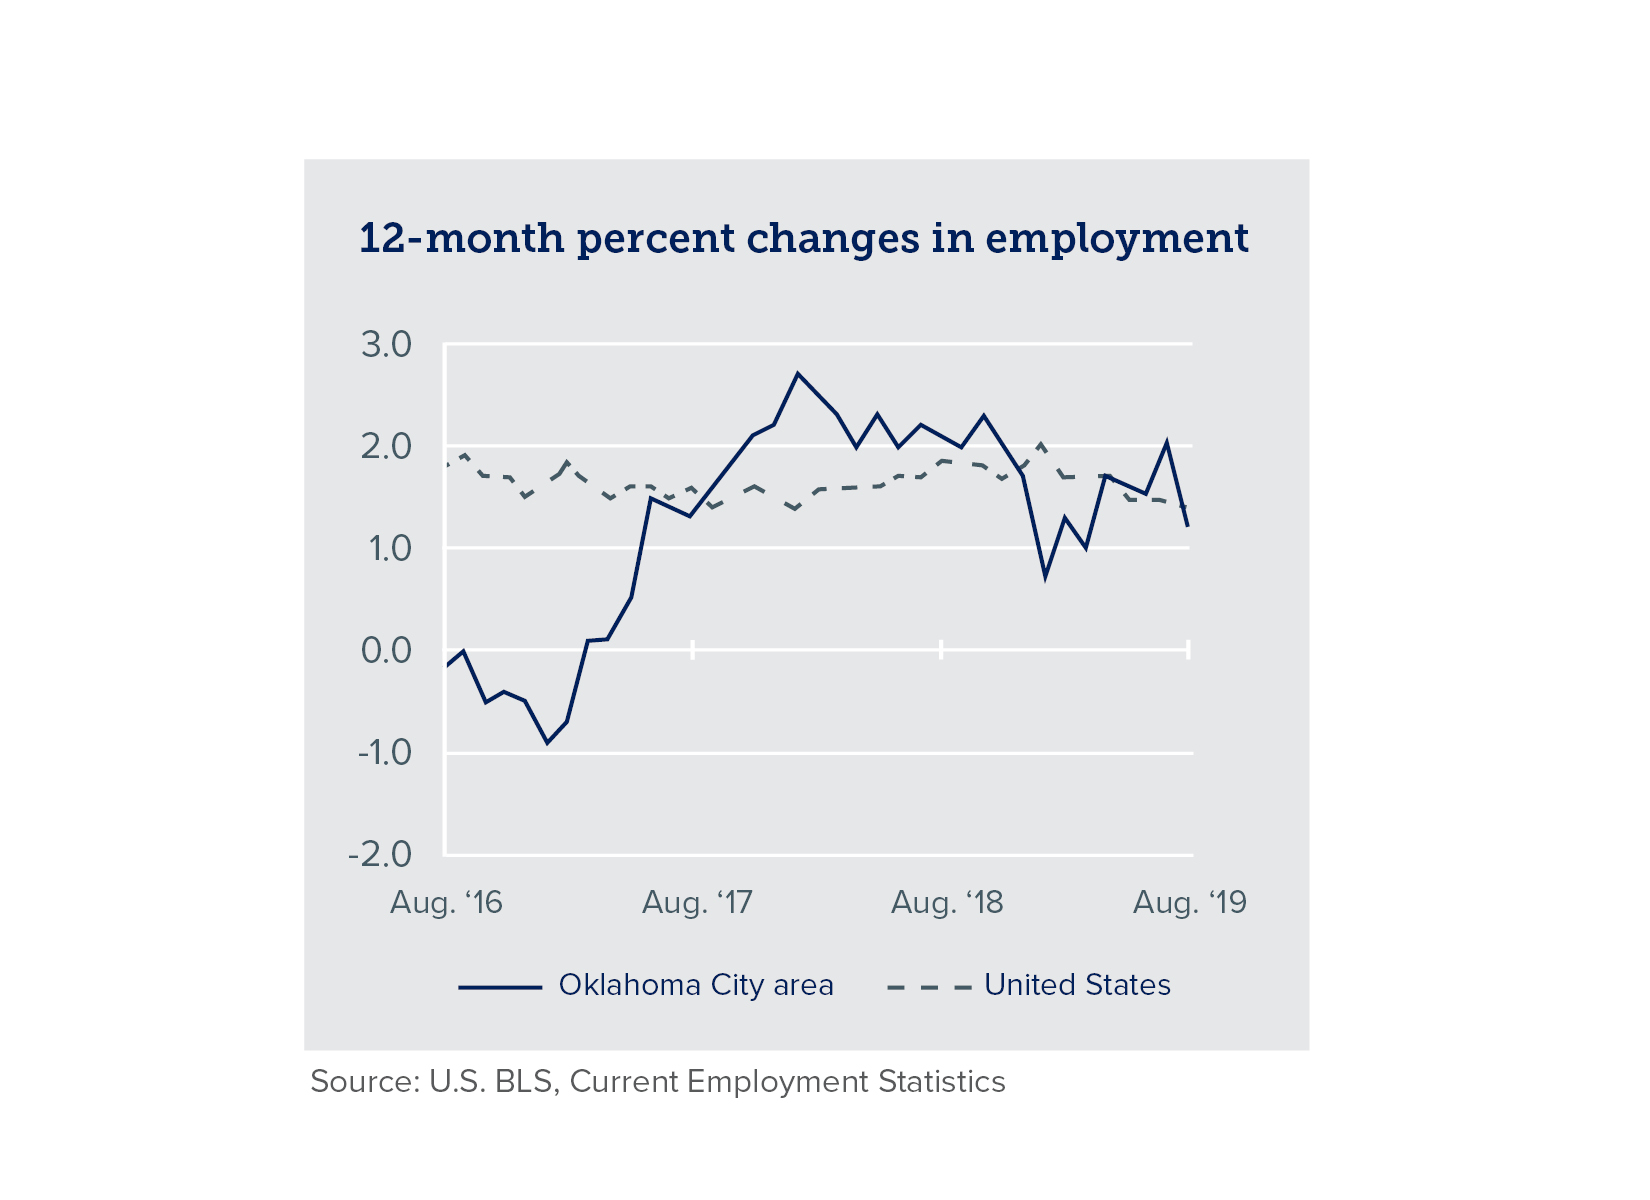 Chart of 12 month percent changes in employment